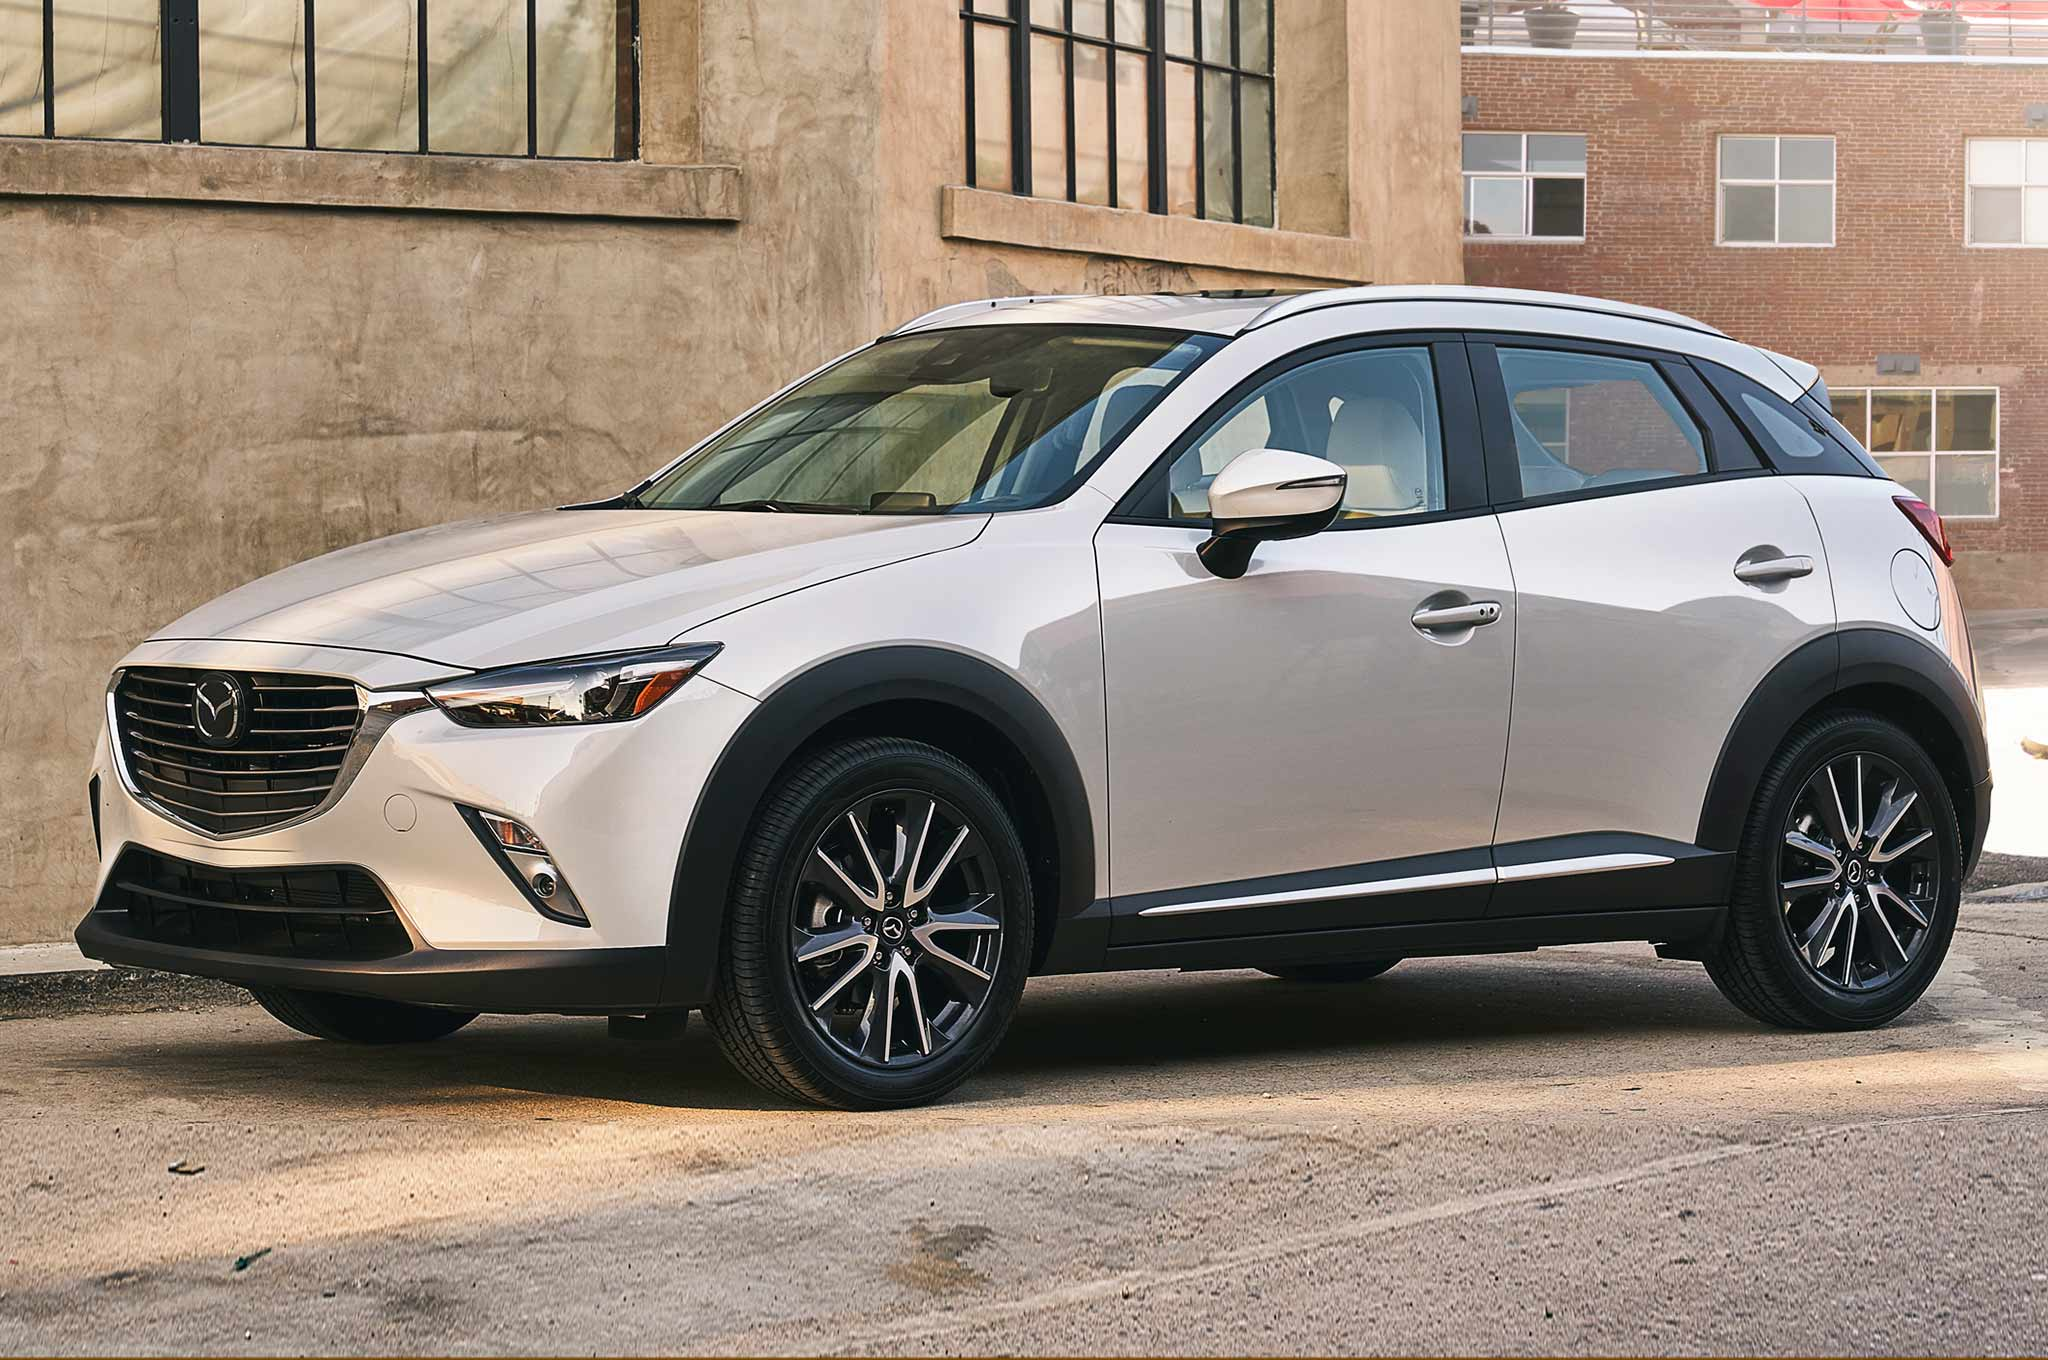 2018 Mazda CX-3: The Car With Options to Fit Any Driver's Needs